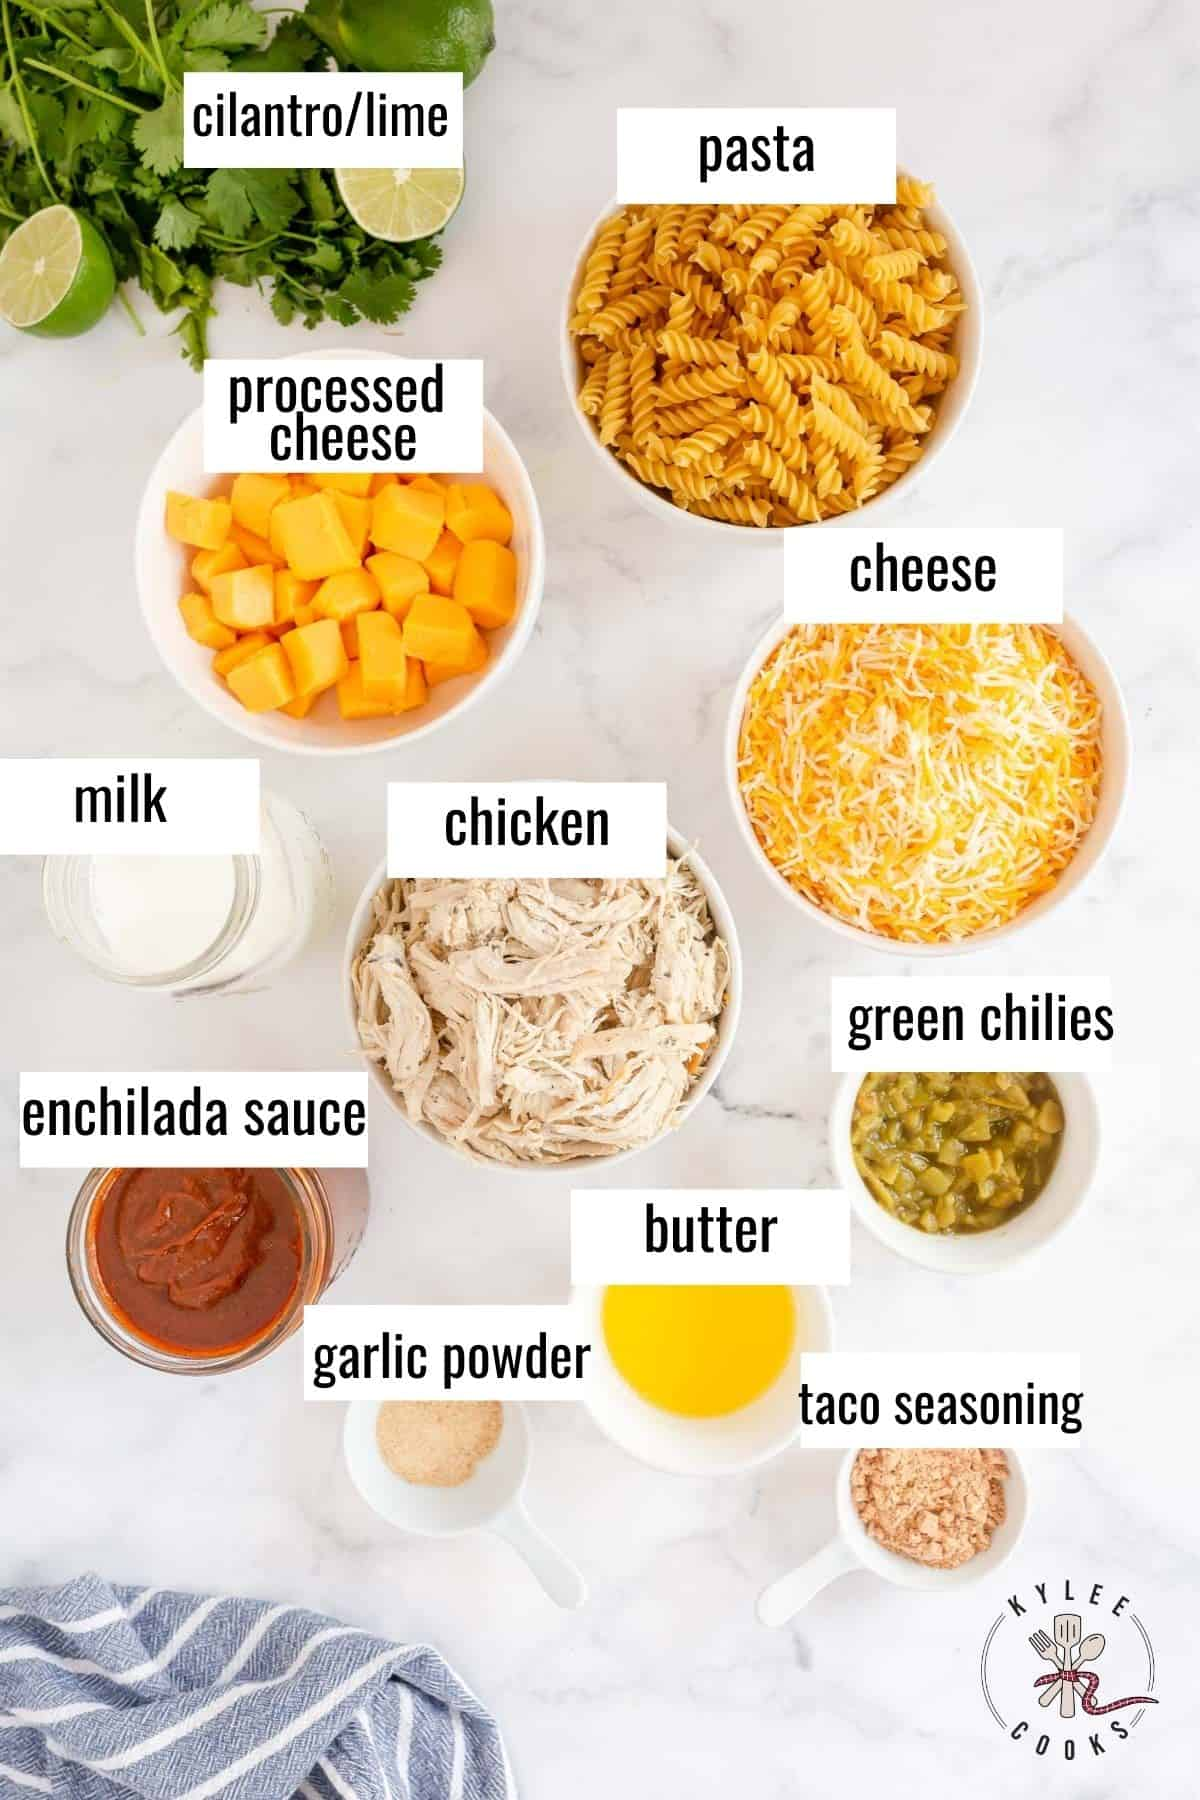 ingredients used in making enchilada pasta laid out and labeled